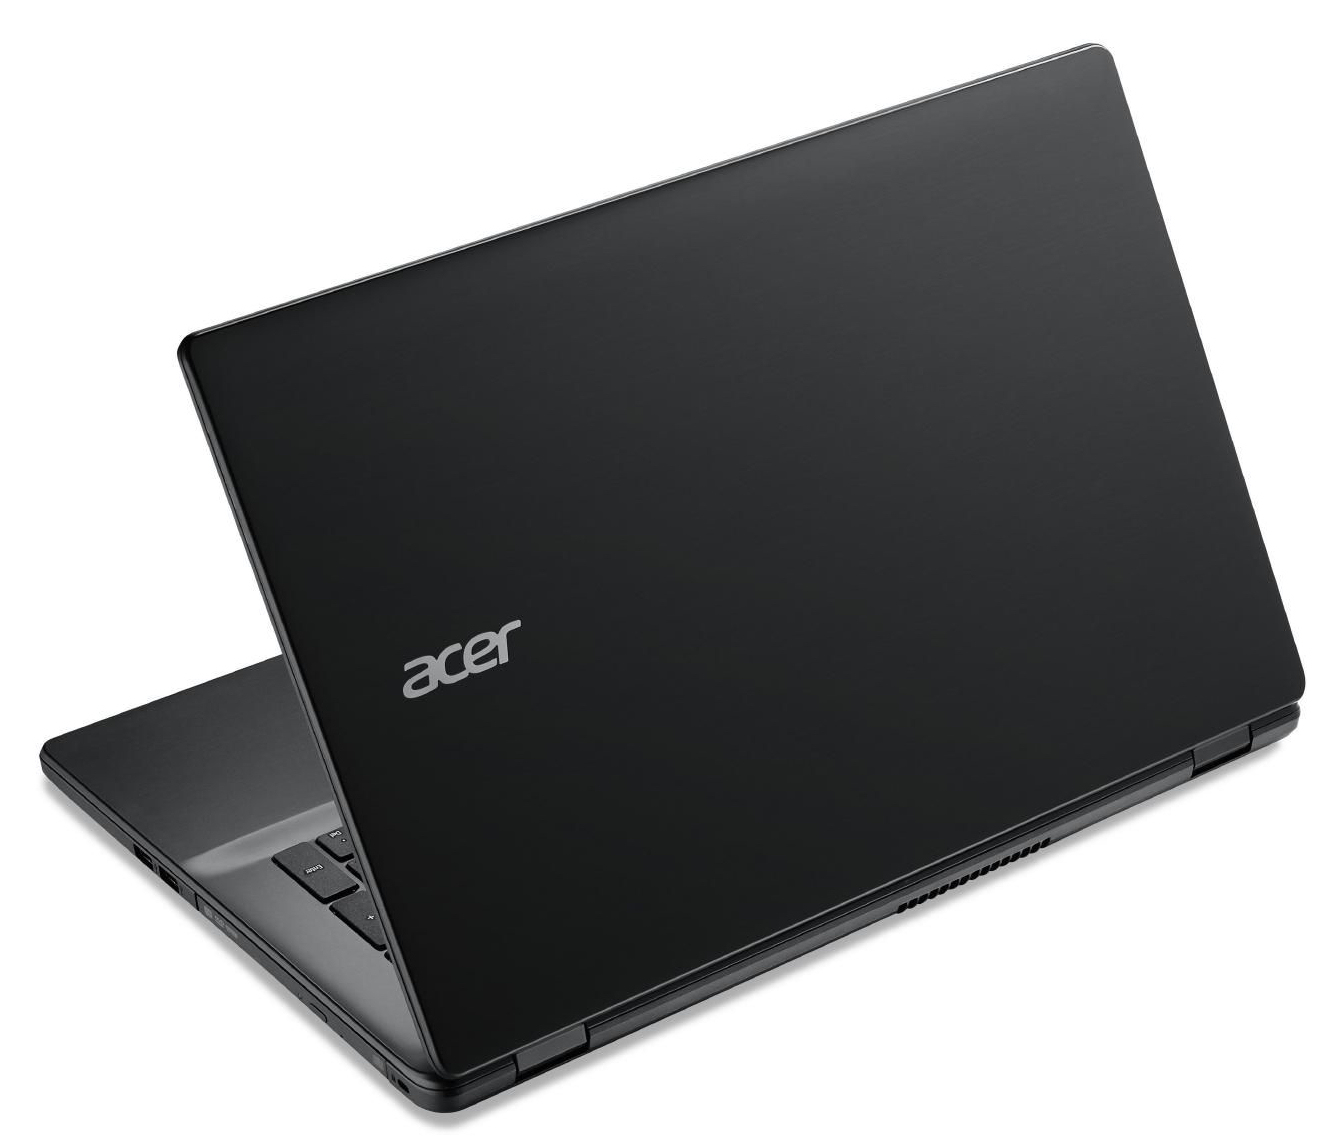 Acer Aspire E5-721 Windows 8 Driver Download